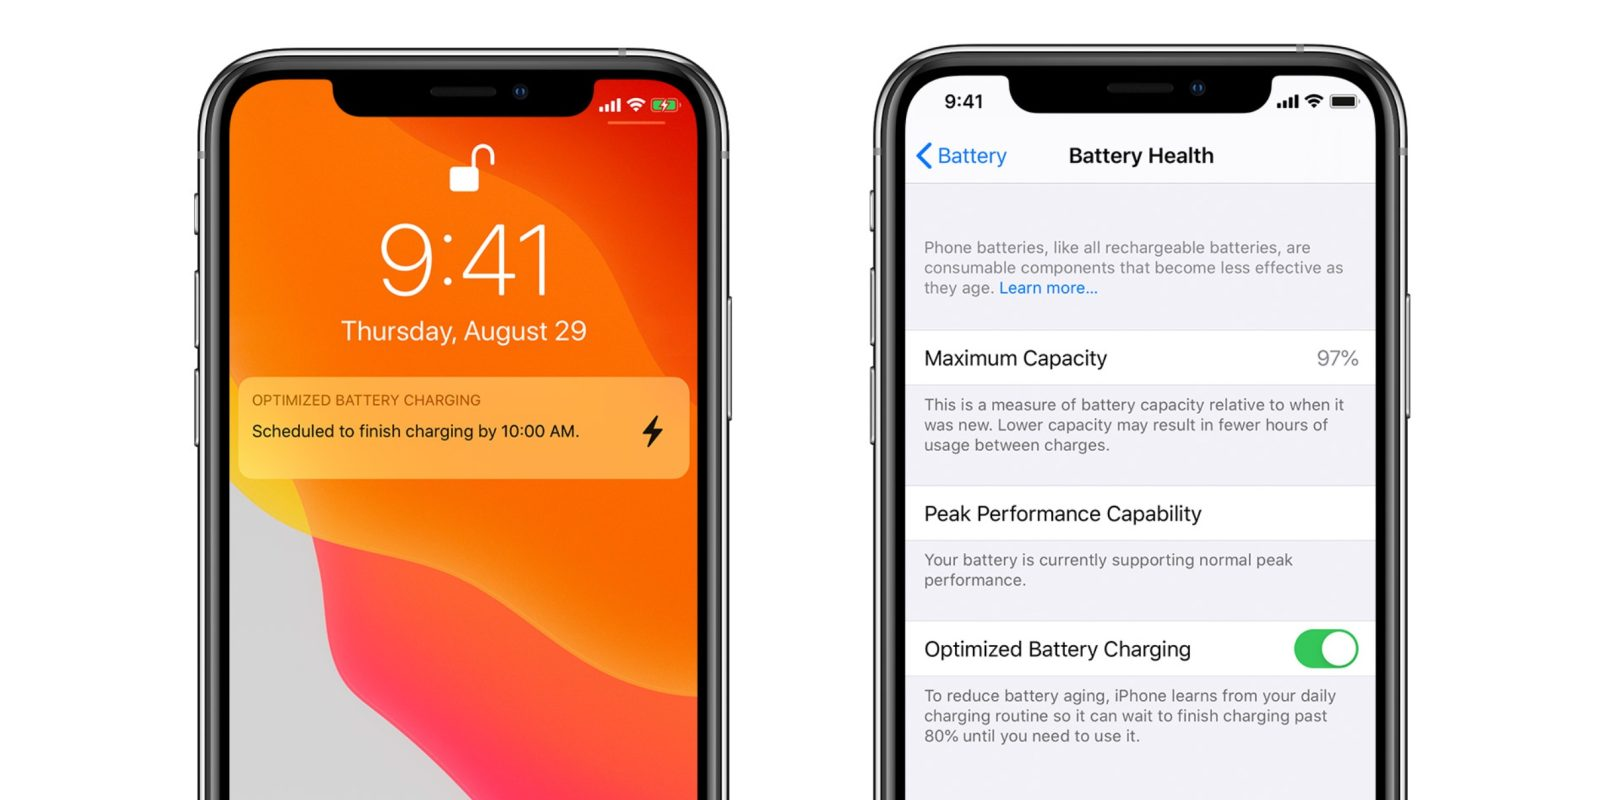 iOS 13 iPhone features: What is Optimized Battery Charging?